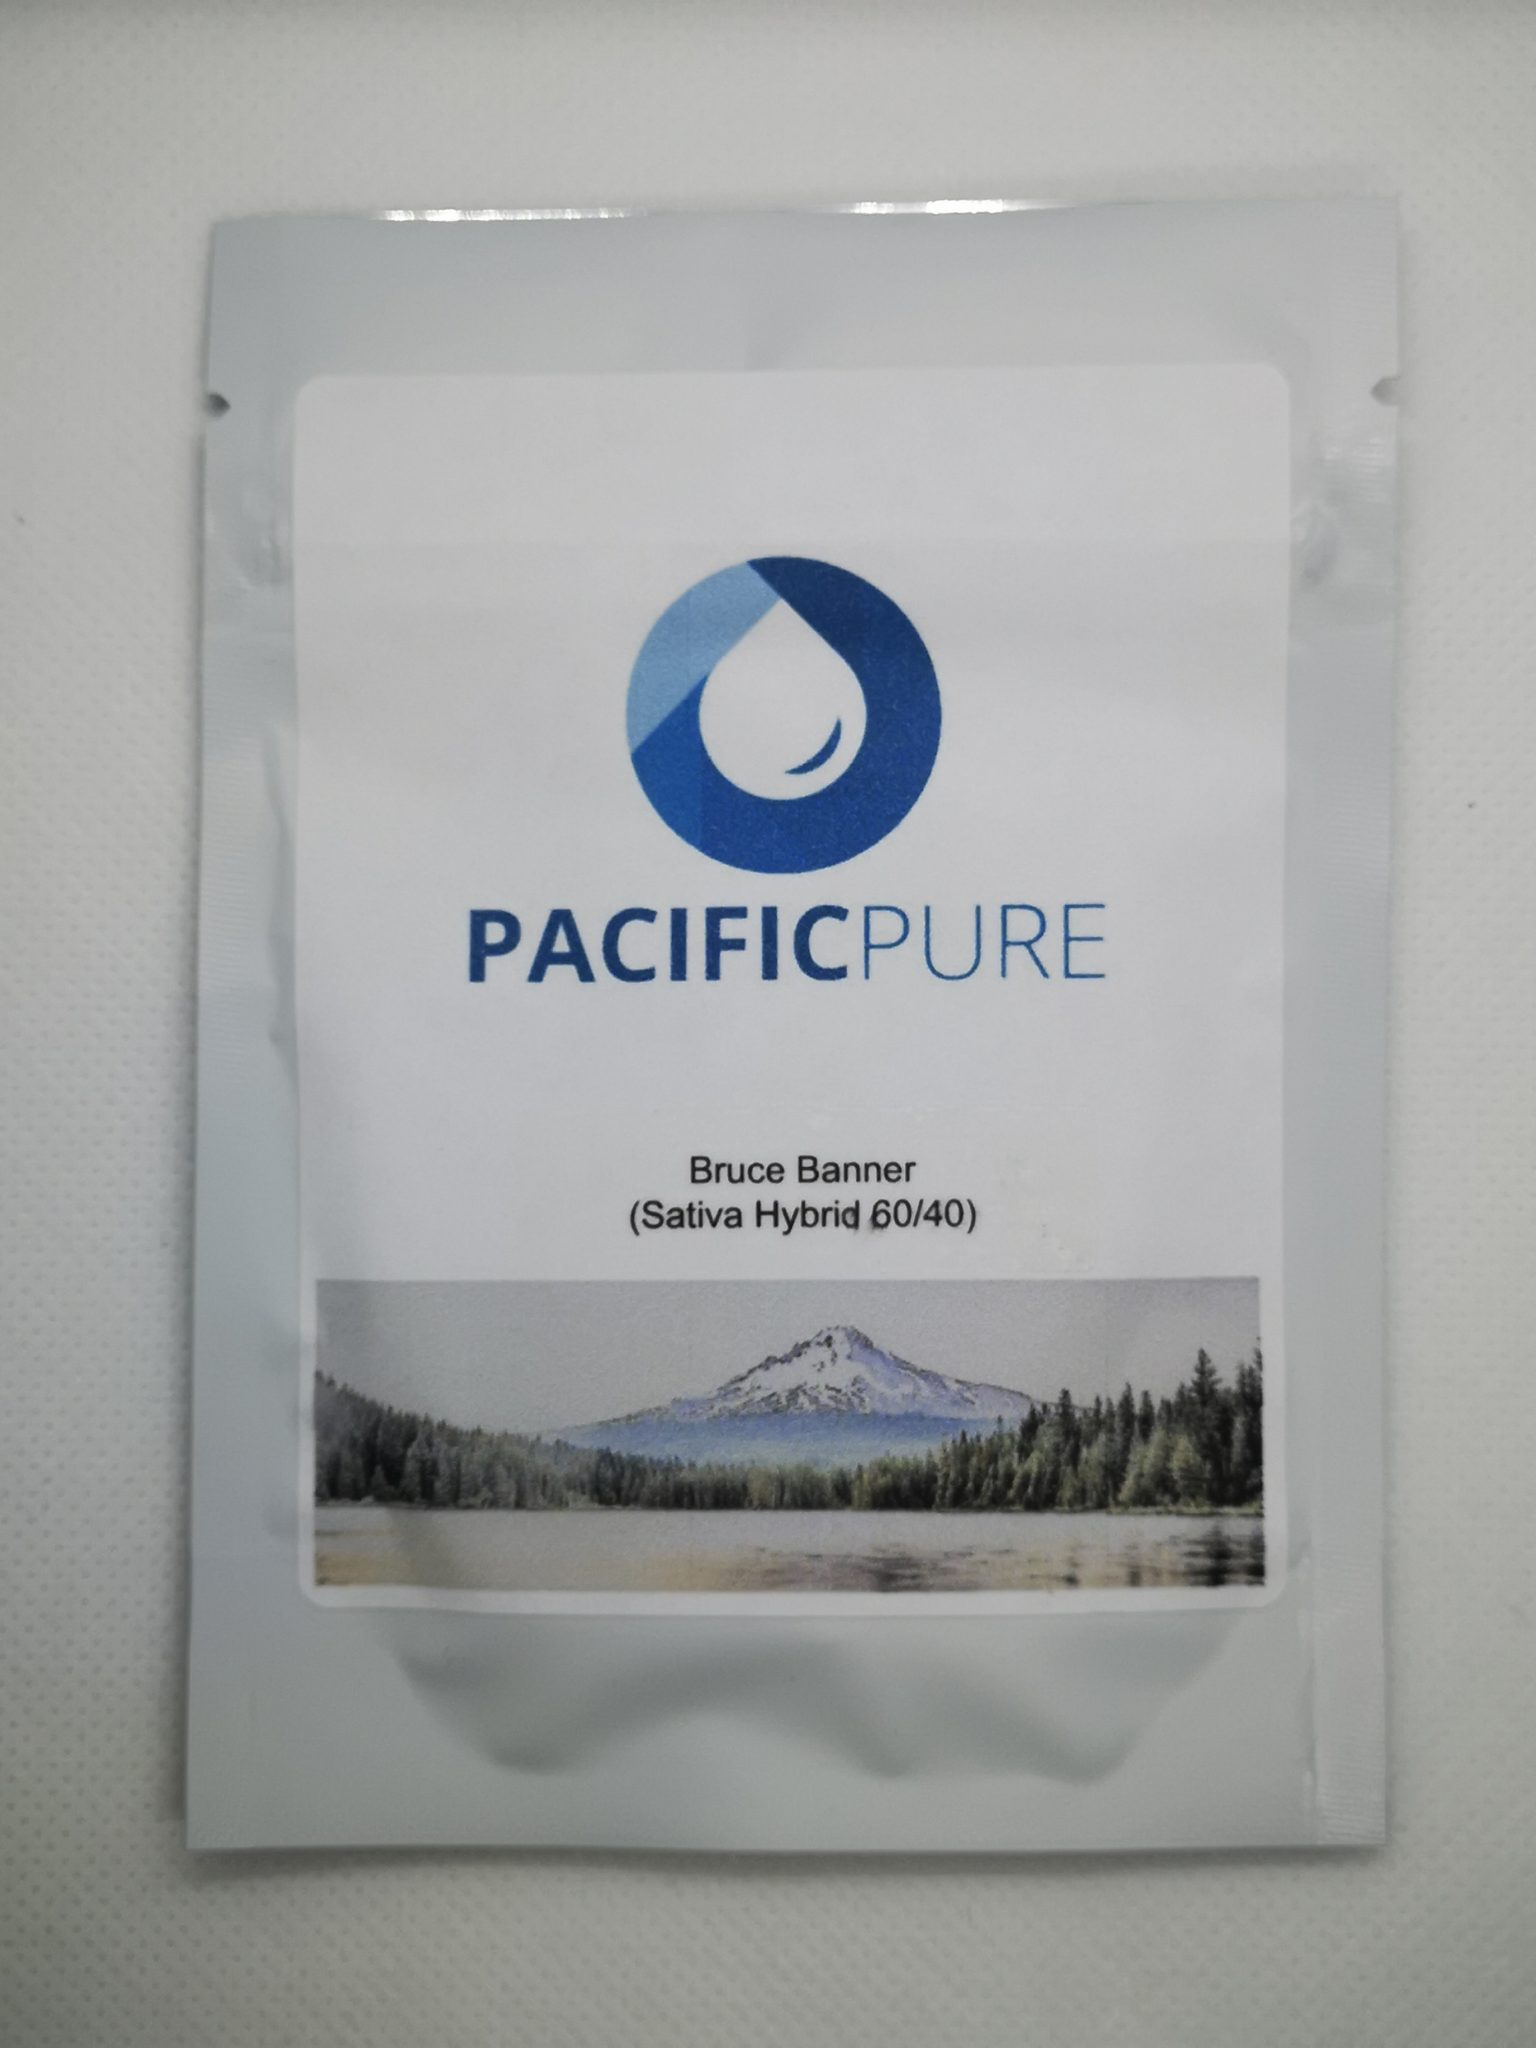 PACIFIC PURE SHATTER (5 STRAINS)